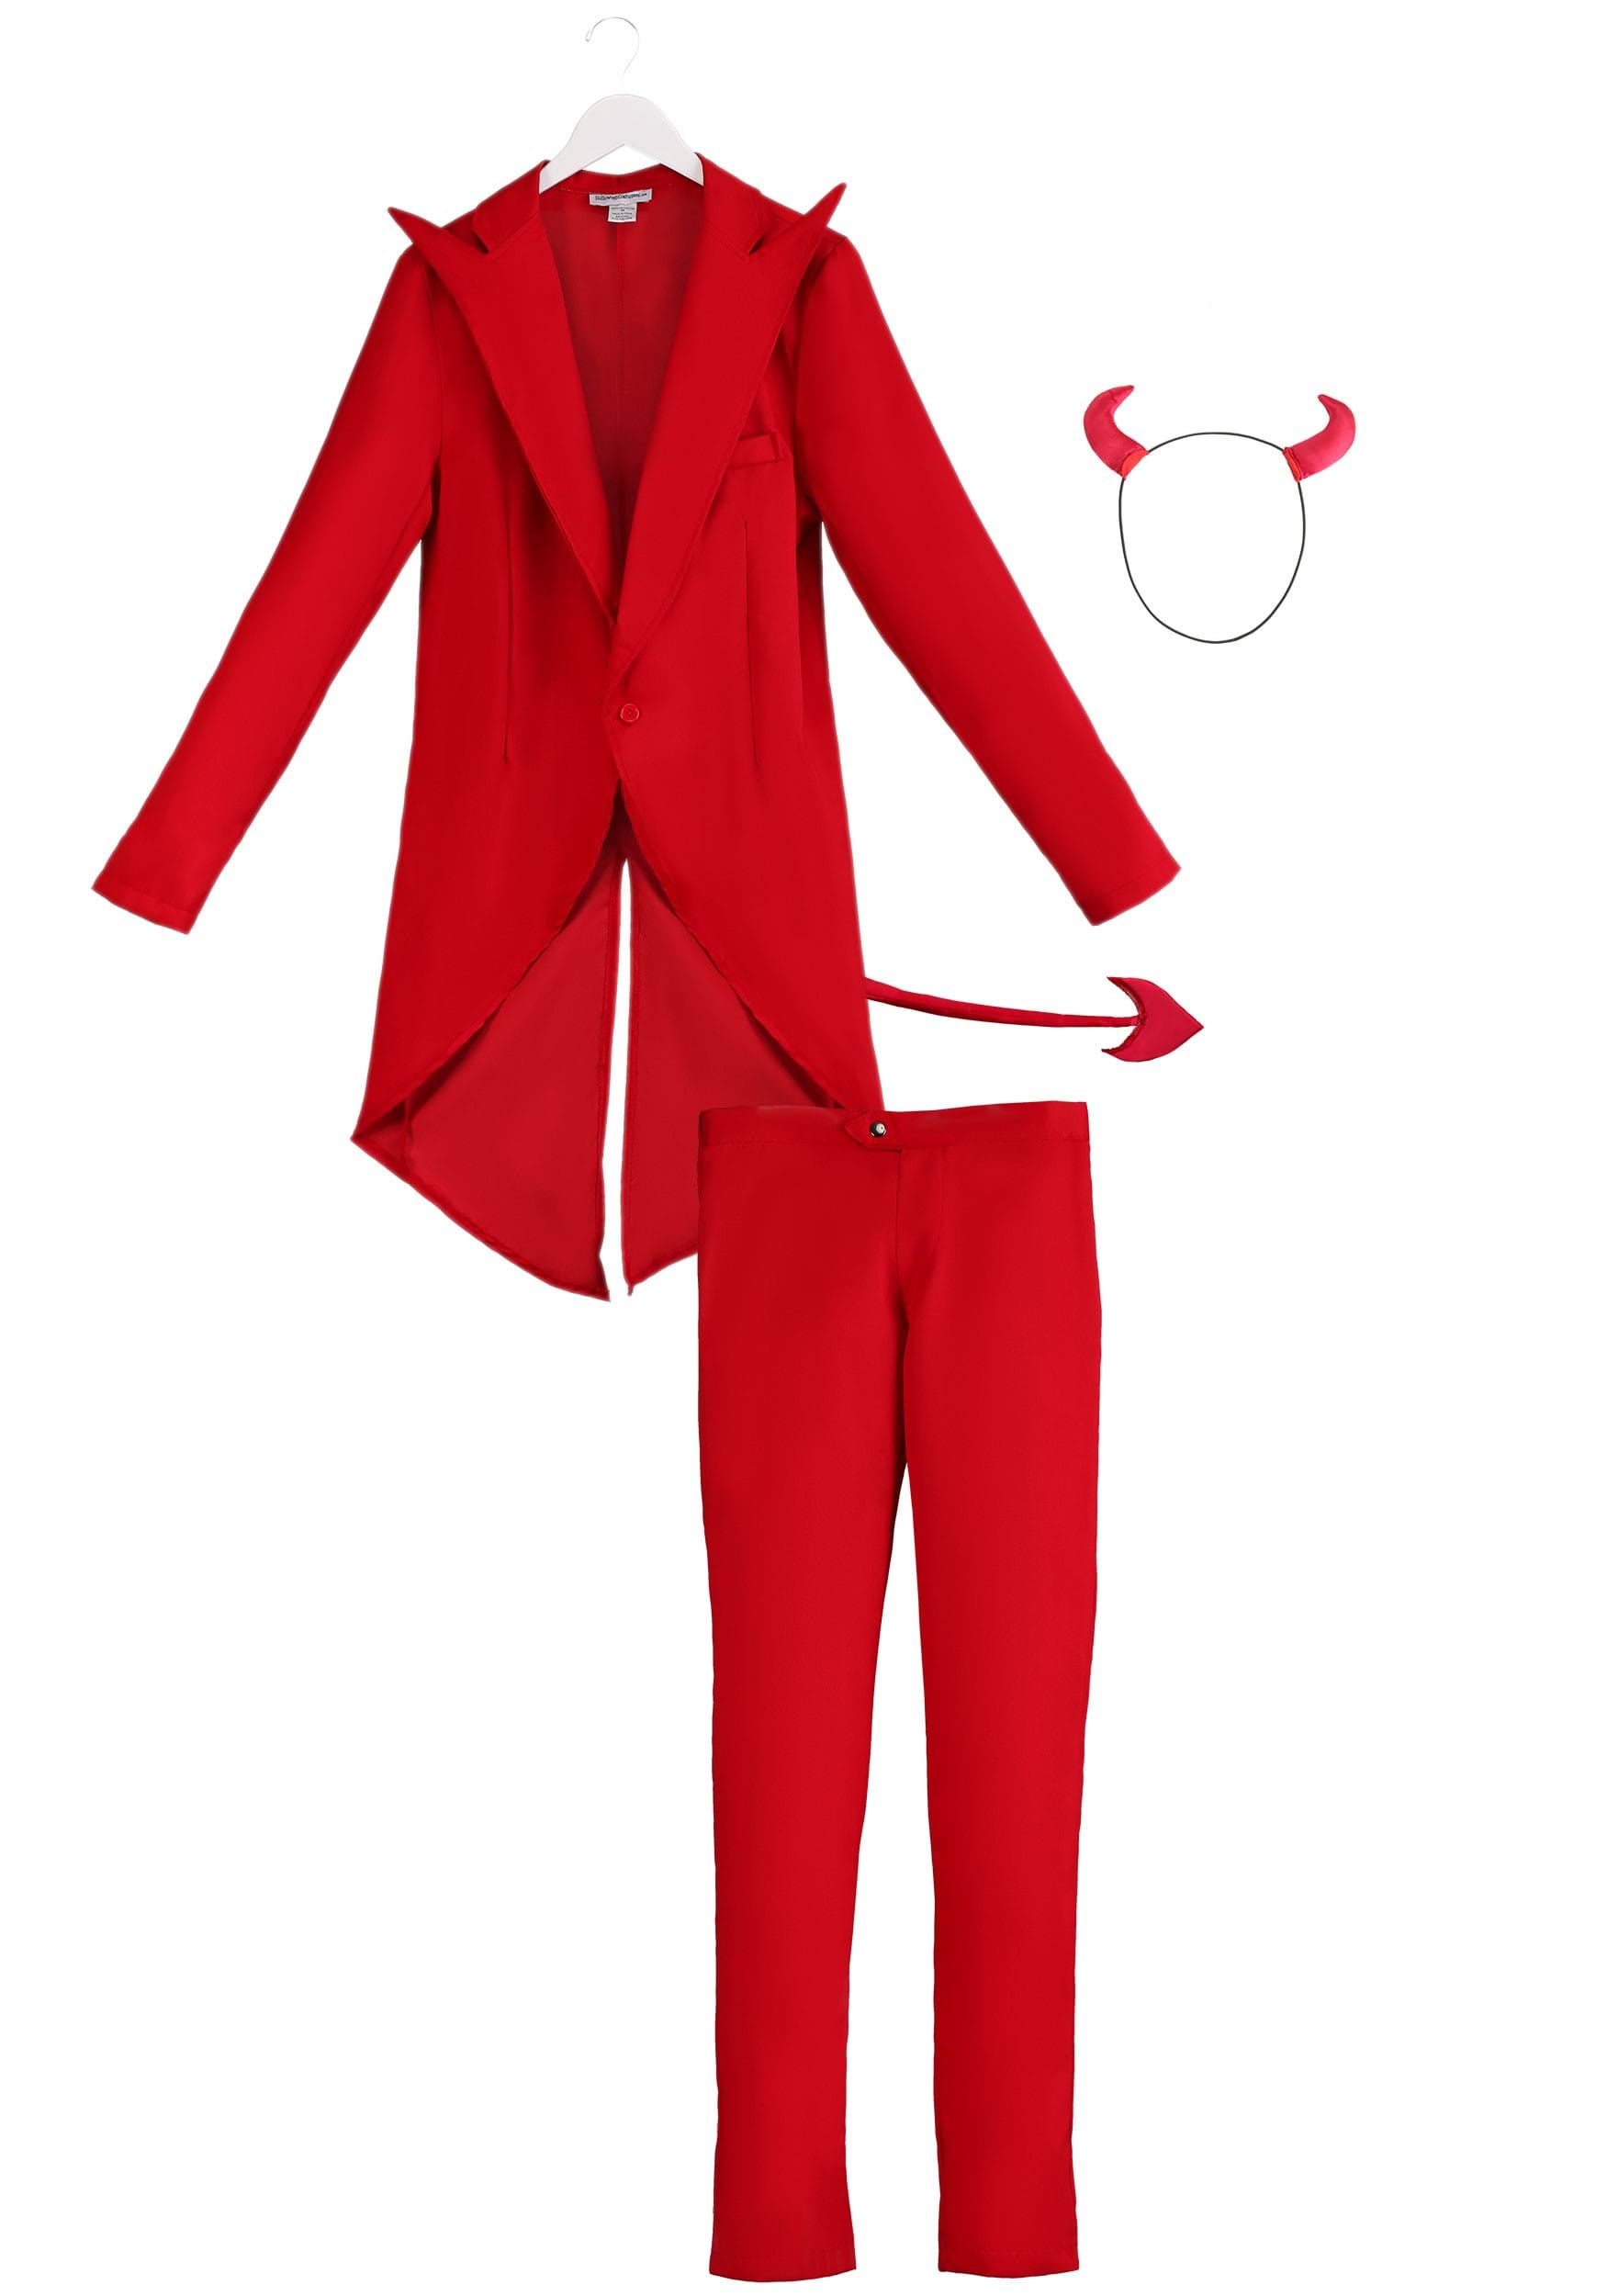 red devil single men Buy mares red devil single backmount set at walmartcom hi get more out of walmartcom create account sign in reorder items.